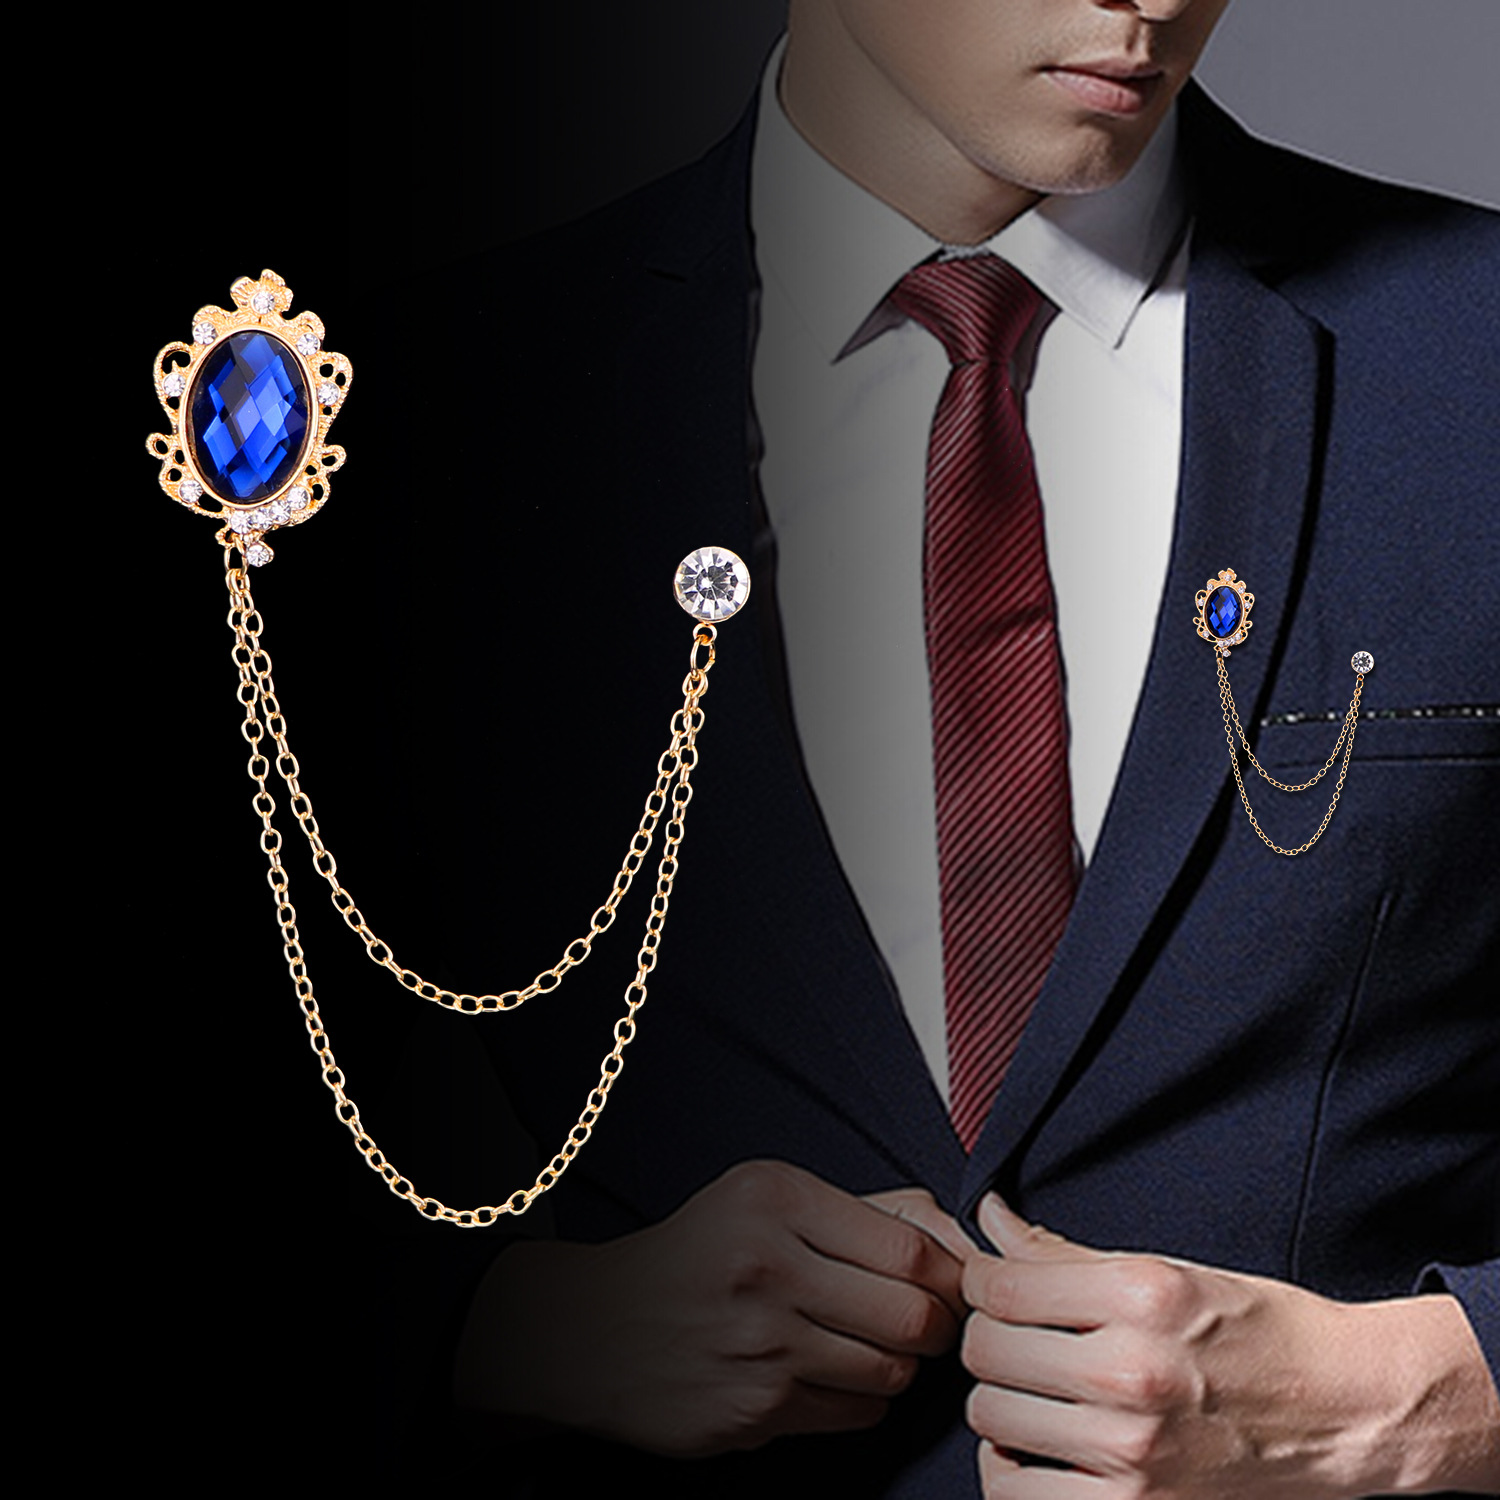 I-Remiel Fashion New Crystal Tassel Chain Brooches Personality Suit Badge Dress Corsage Brooch Jewelry Luxury Men Accessories